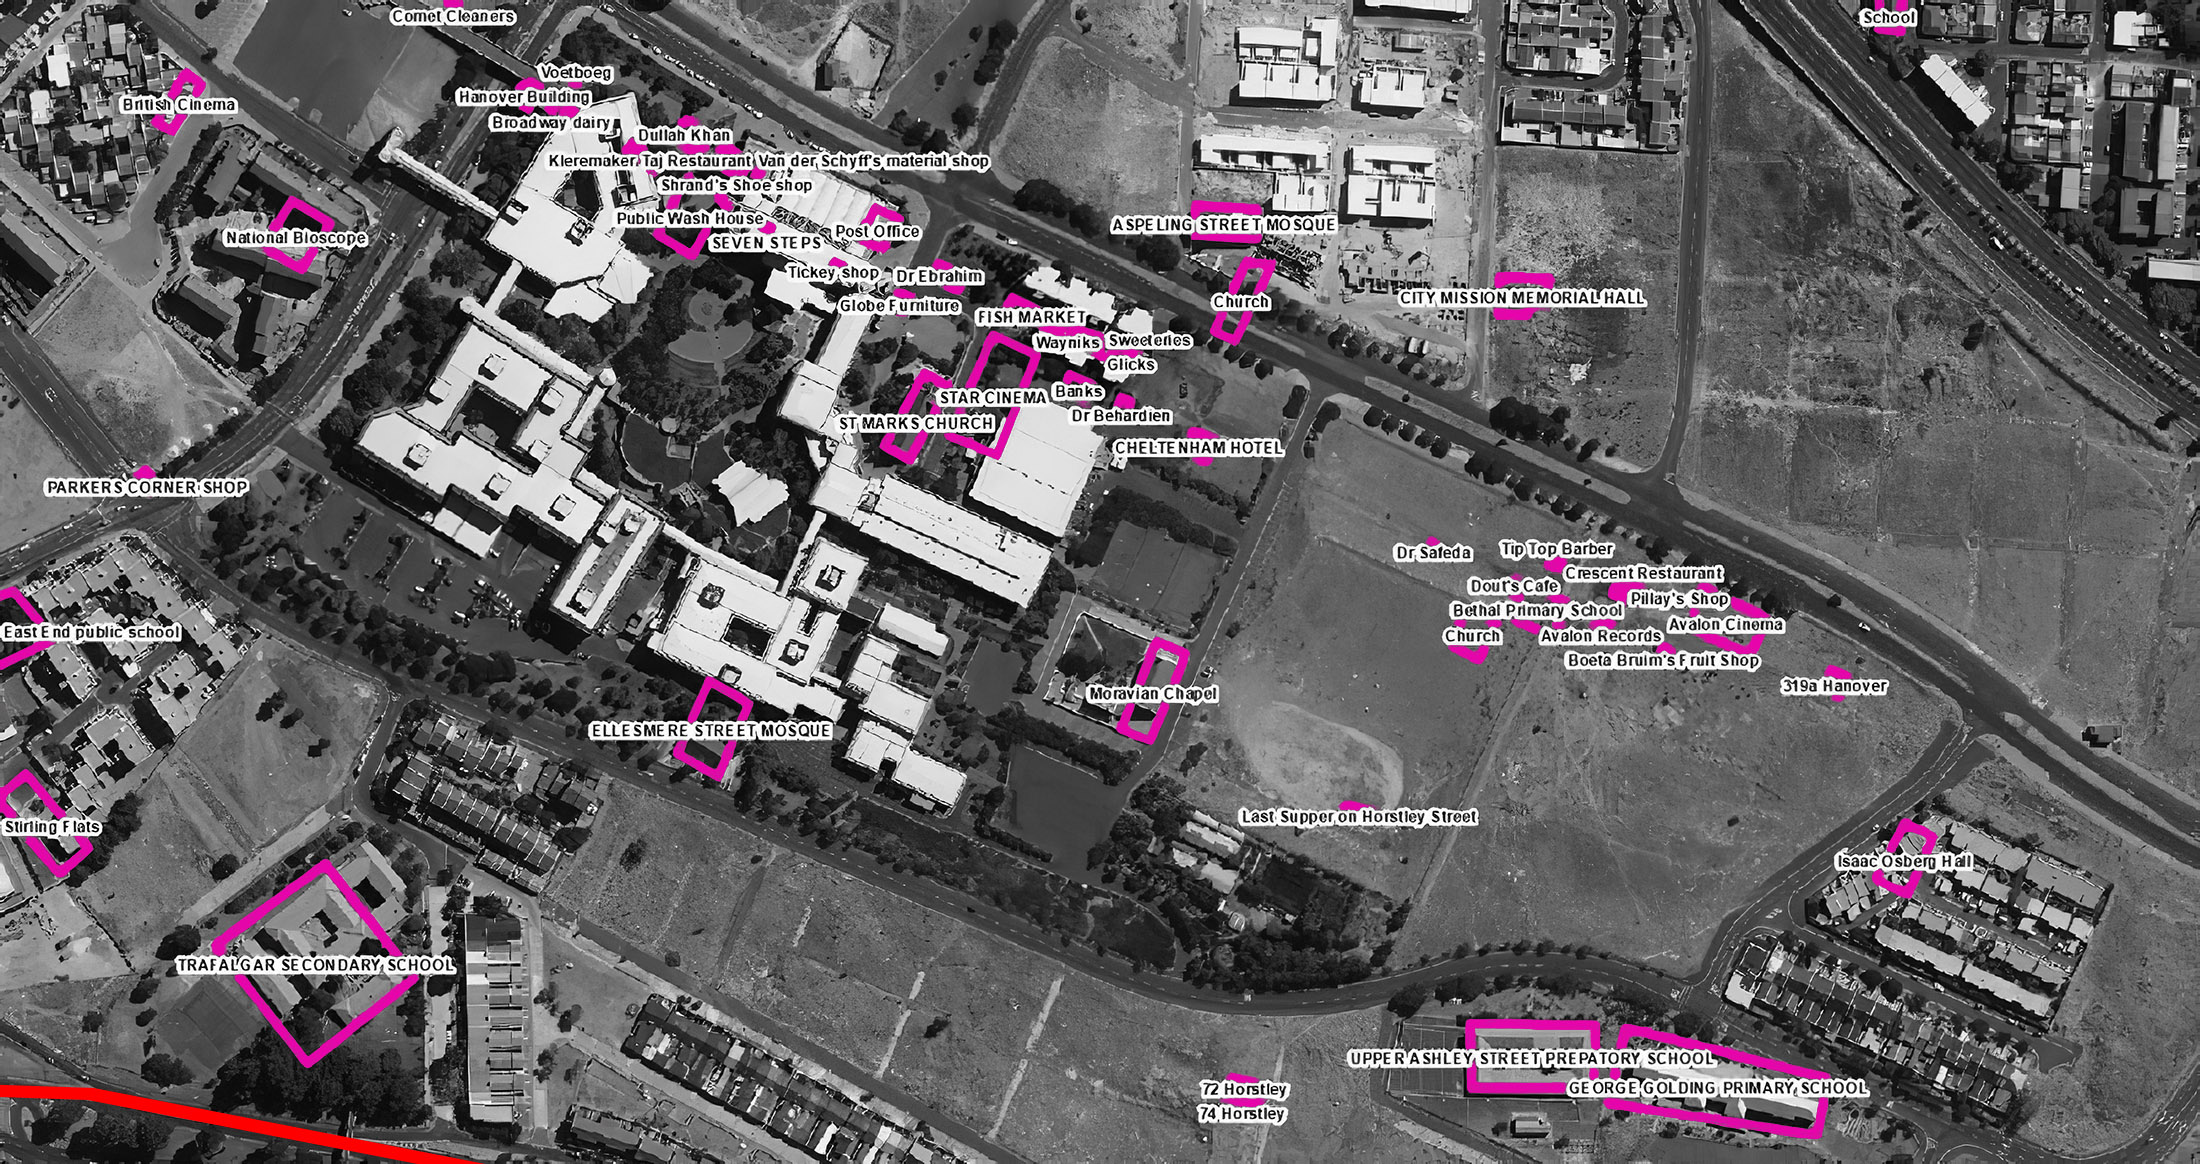 Figure 14. District Six historical sites over 2011 imagery